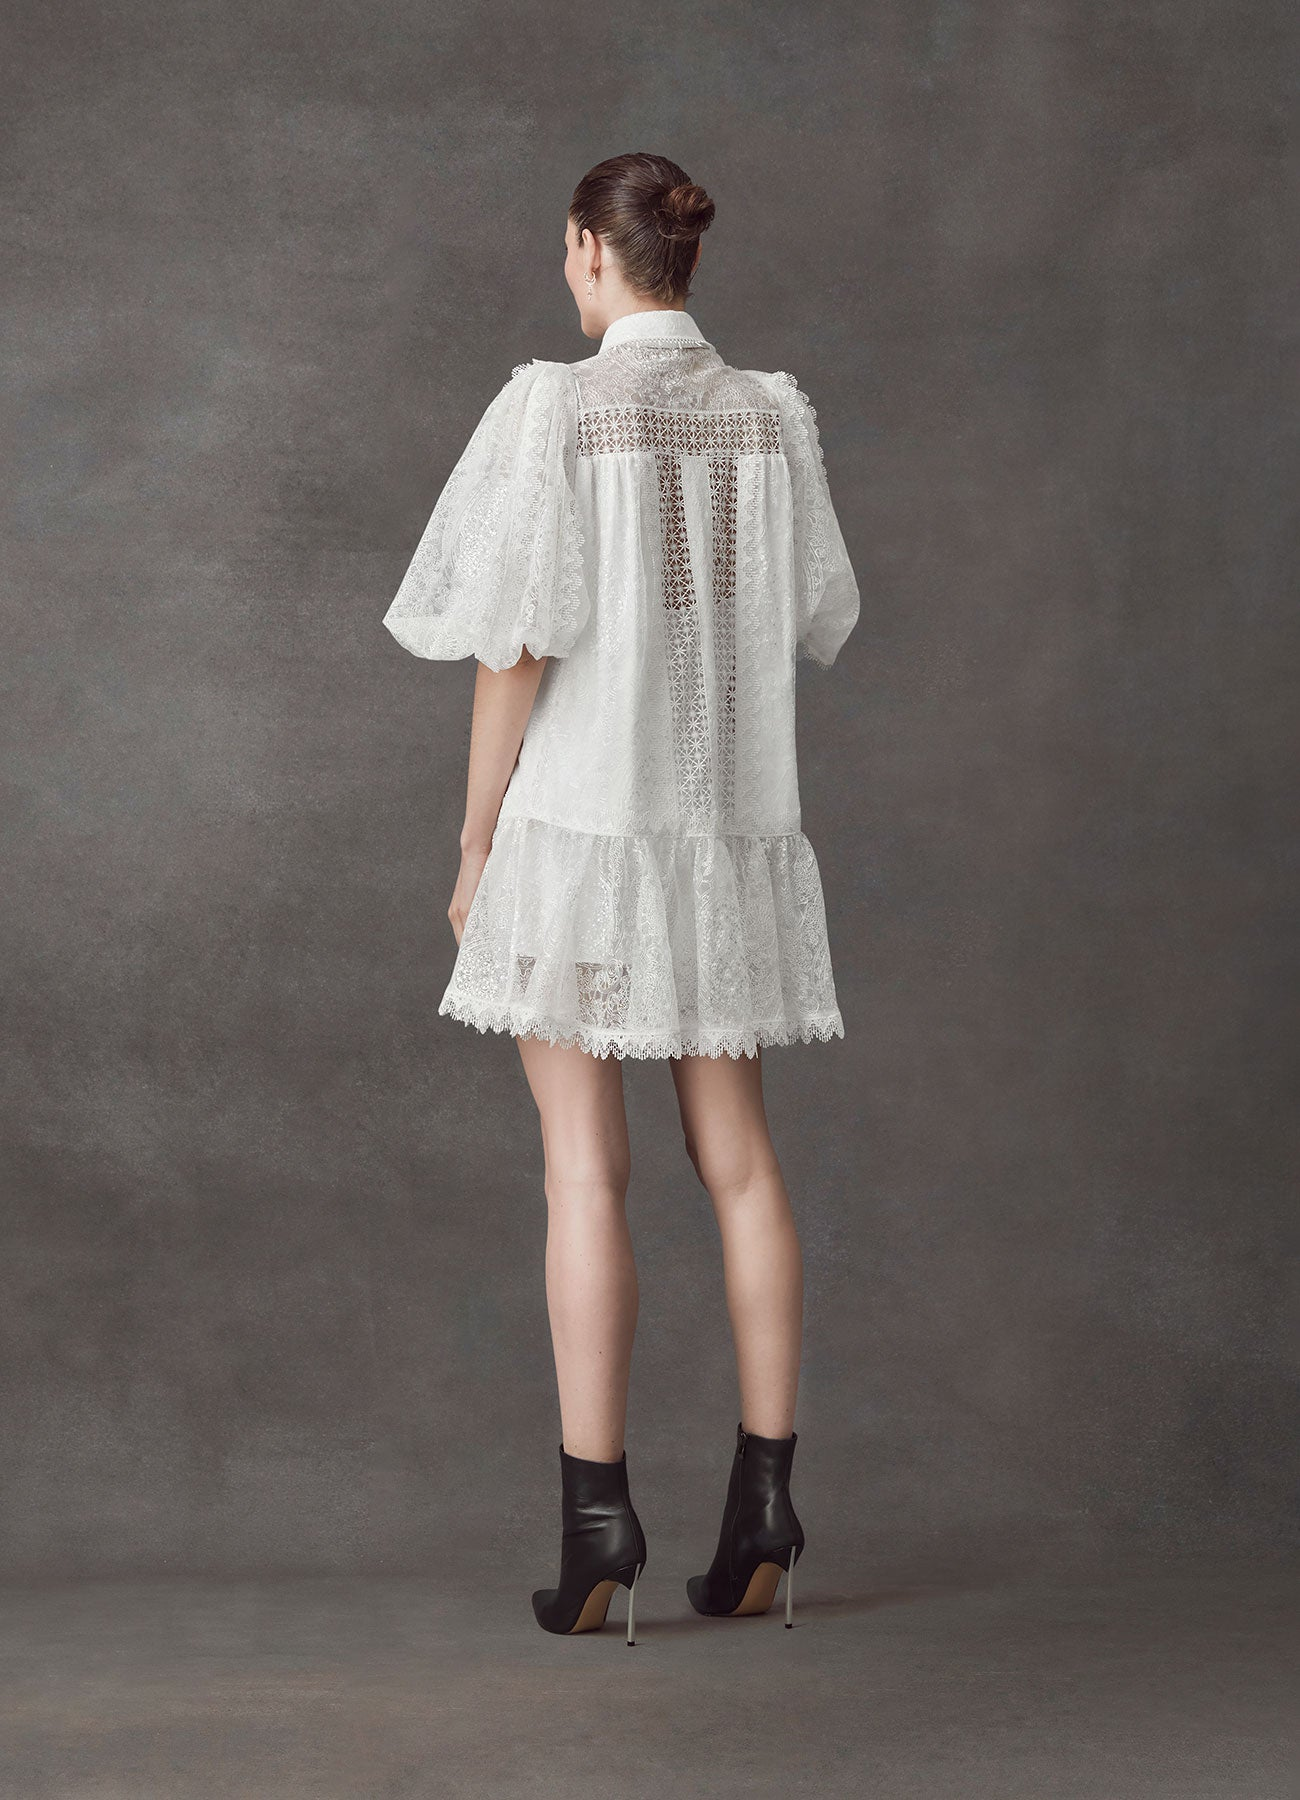 Serenity Patch Lace Short Dress